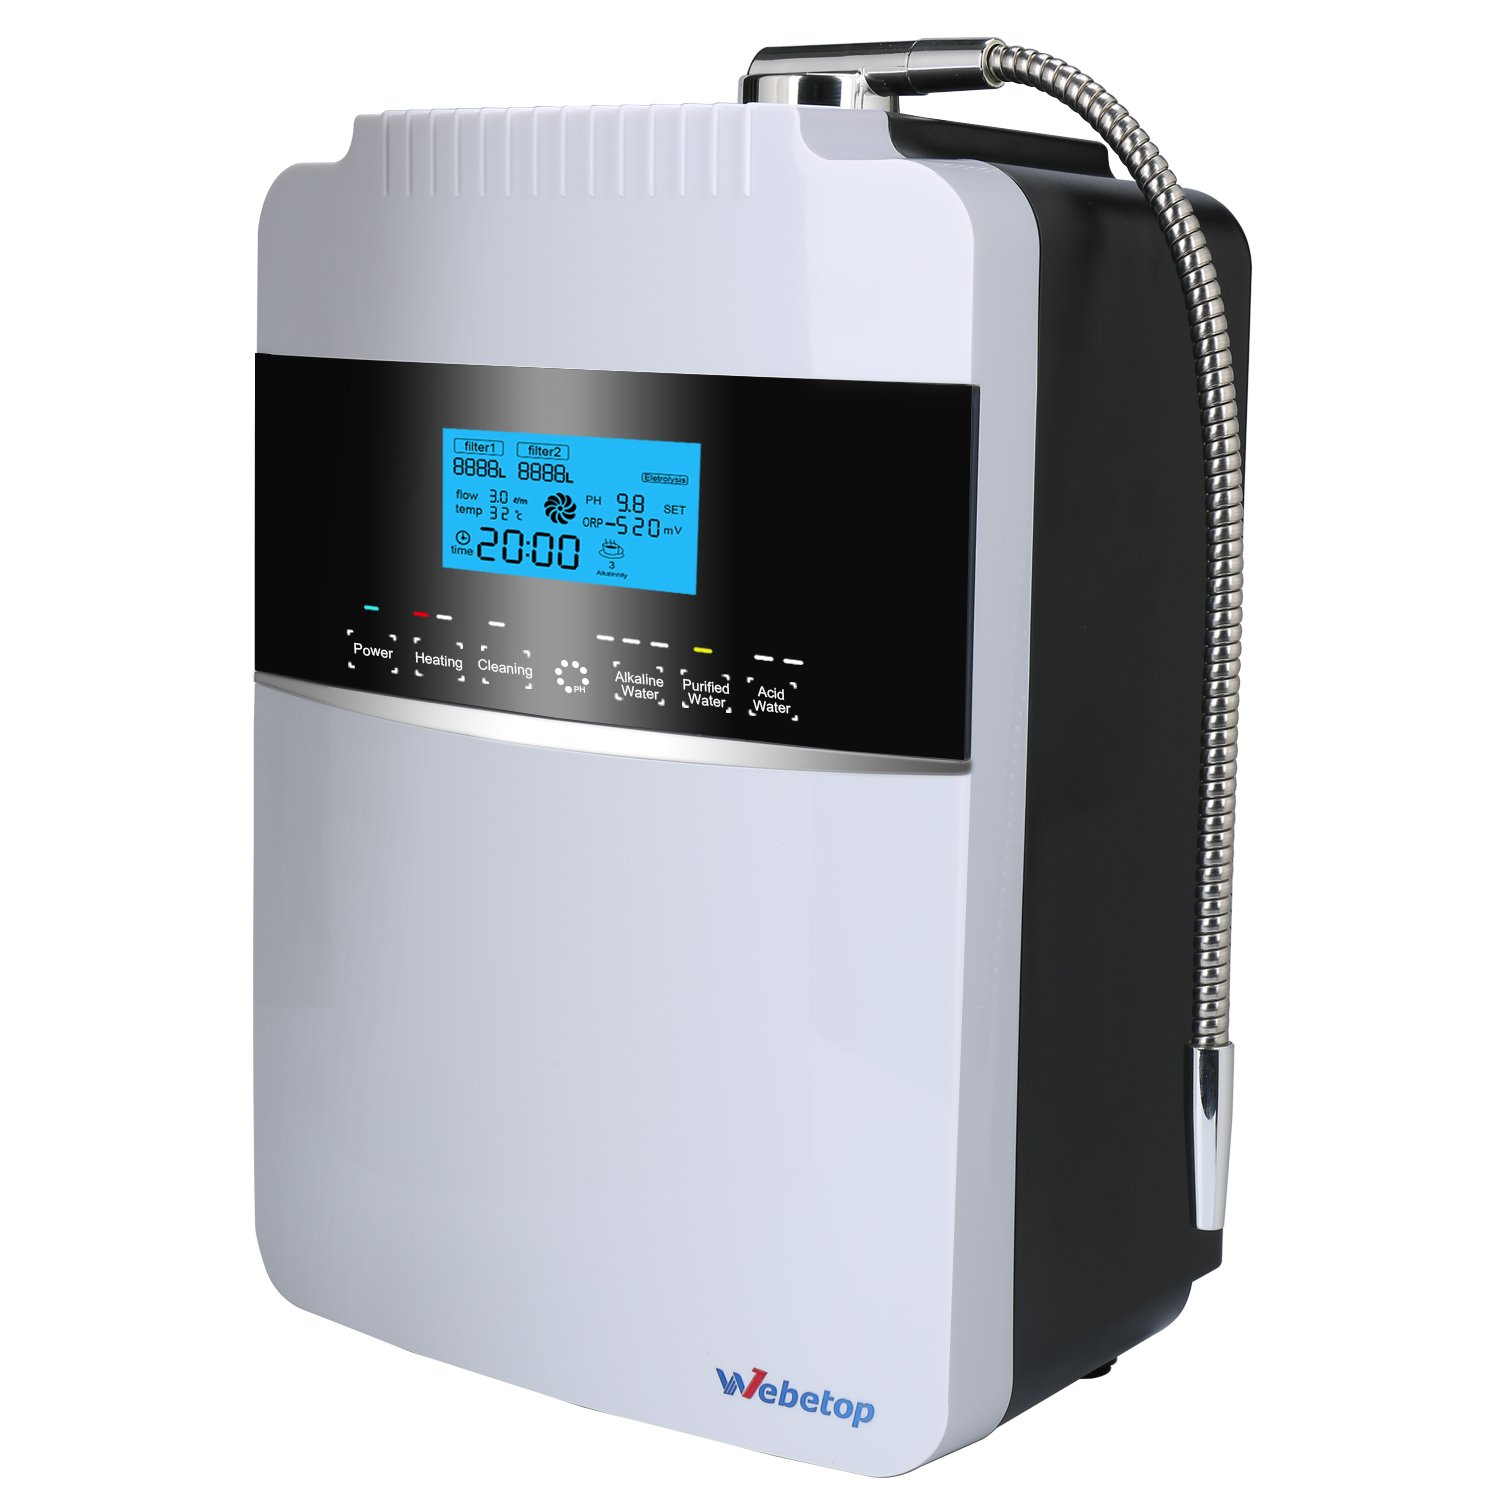 Webetop Water Ionizer Filtration Machine with Dual Internal Water Filters/ Produces pH 2.5-11.2 Alkaline Water/ Up to -800mV ORP/ 8000 Liters Per Filter/ 6 Water Settings/ Auto-Cleaning